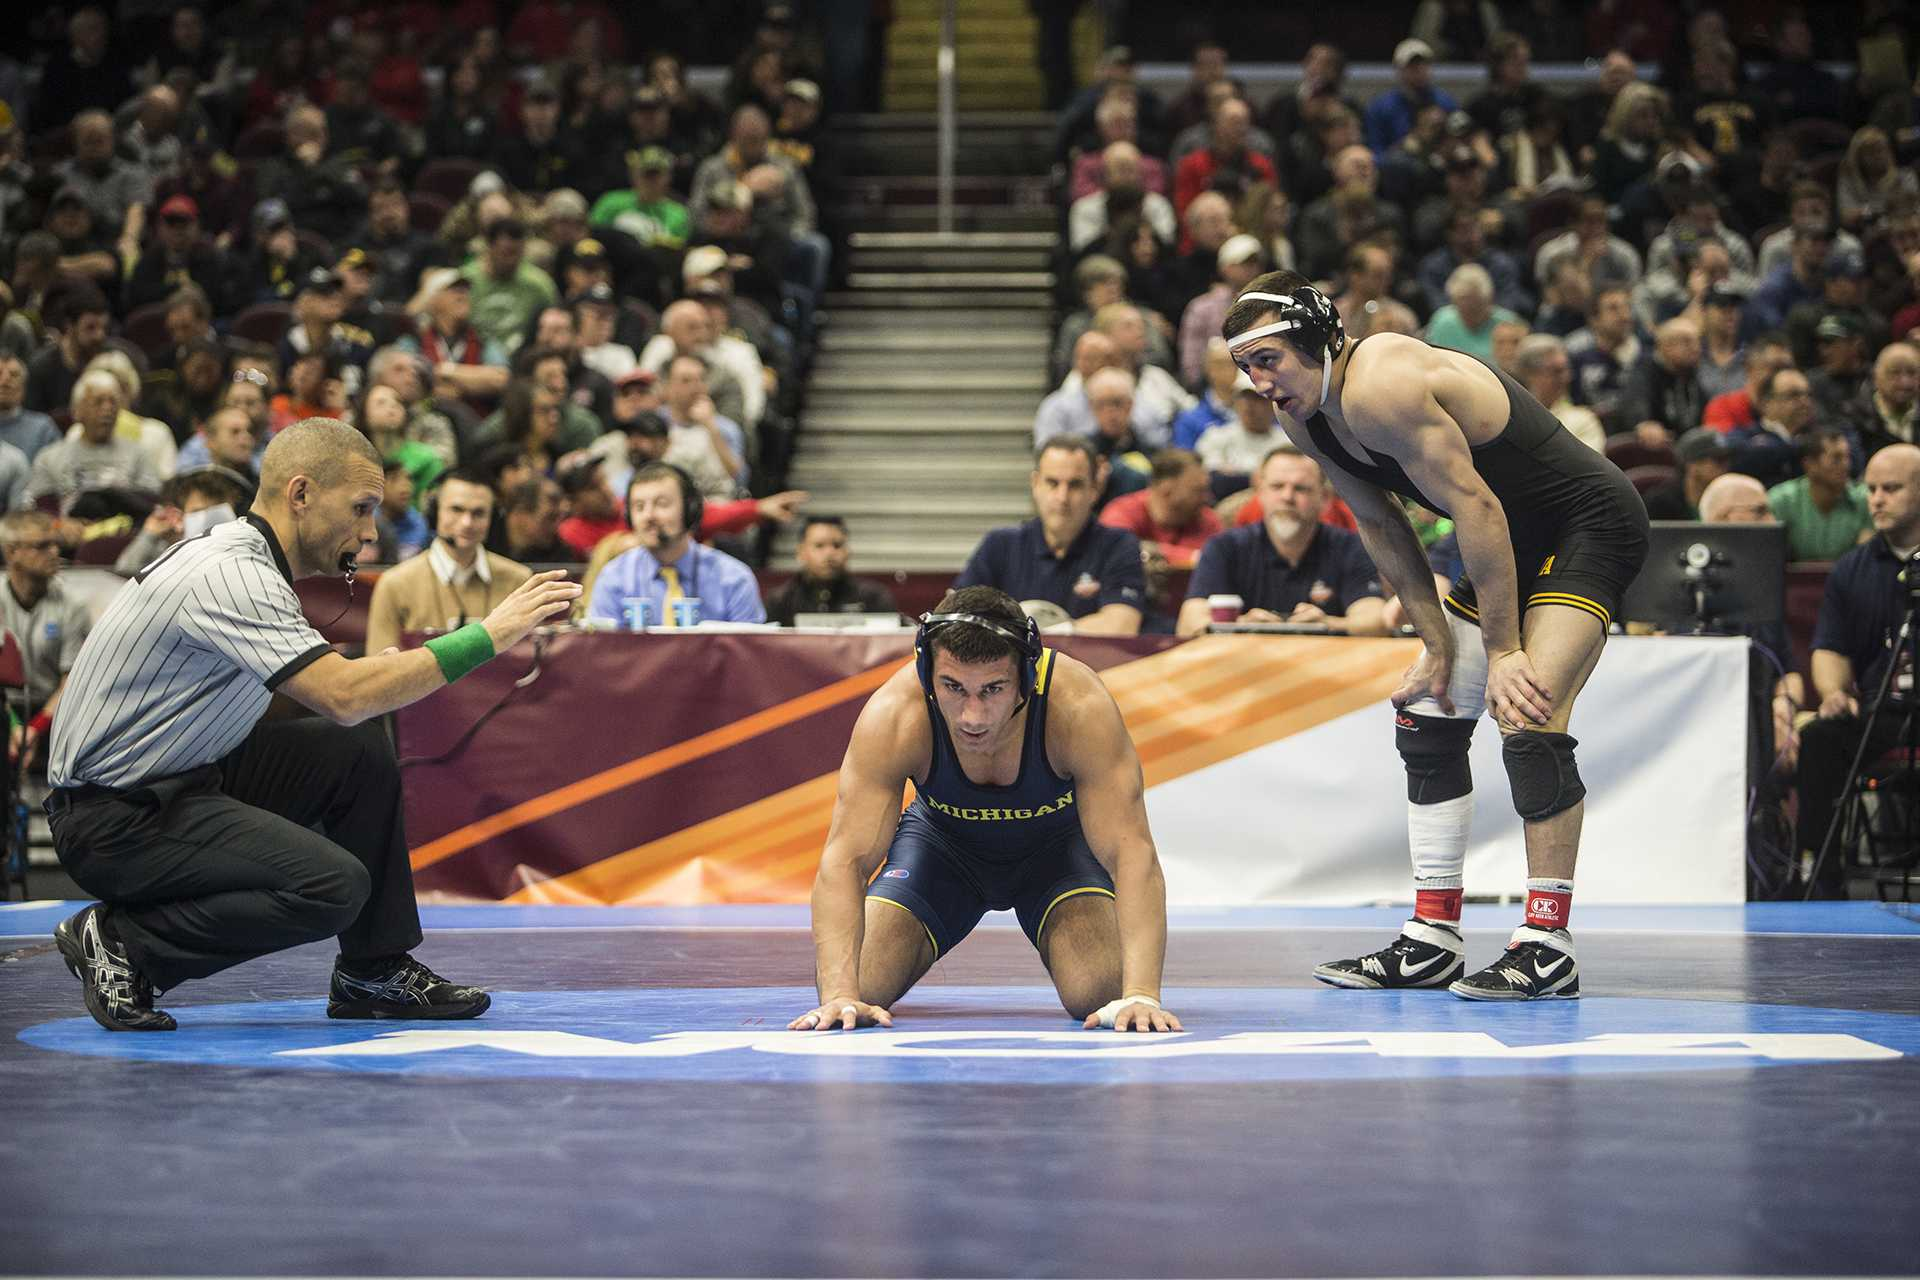 Iowa clinches third place at NCAAs